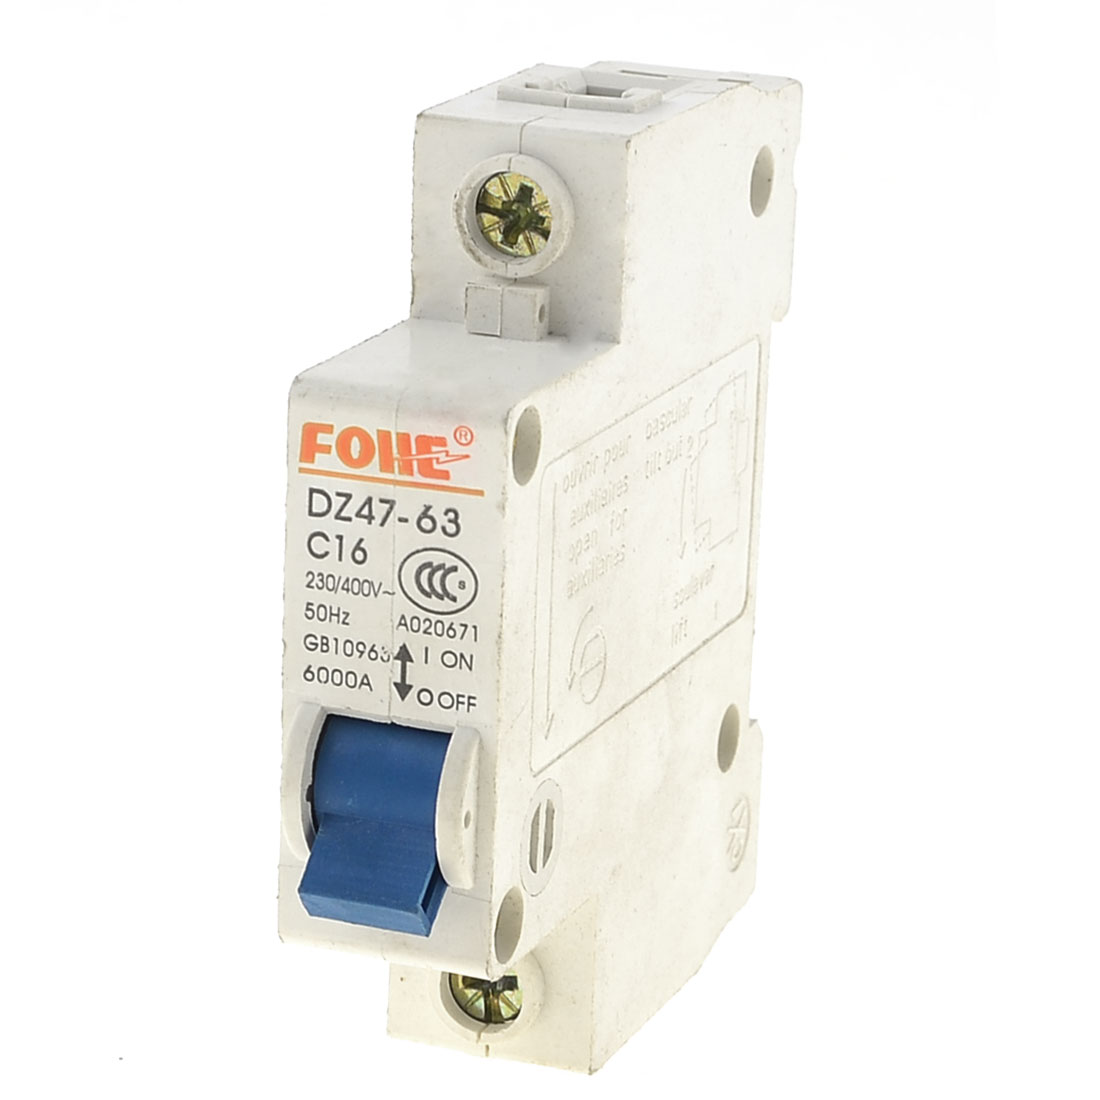 3.5cm DIN Rail Mounted DZ47-63 C16 AC 230/400V Single Pole Circuit Breaker